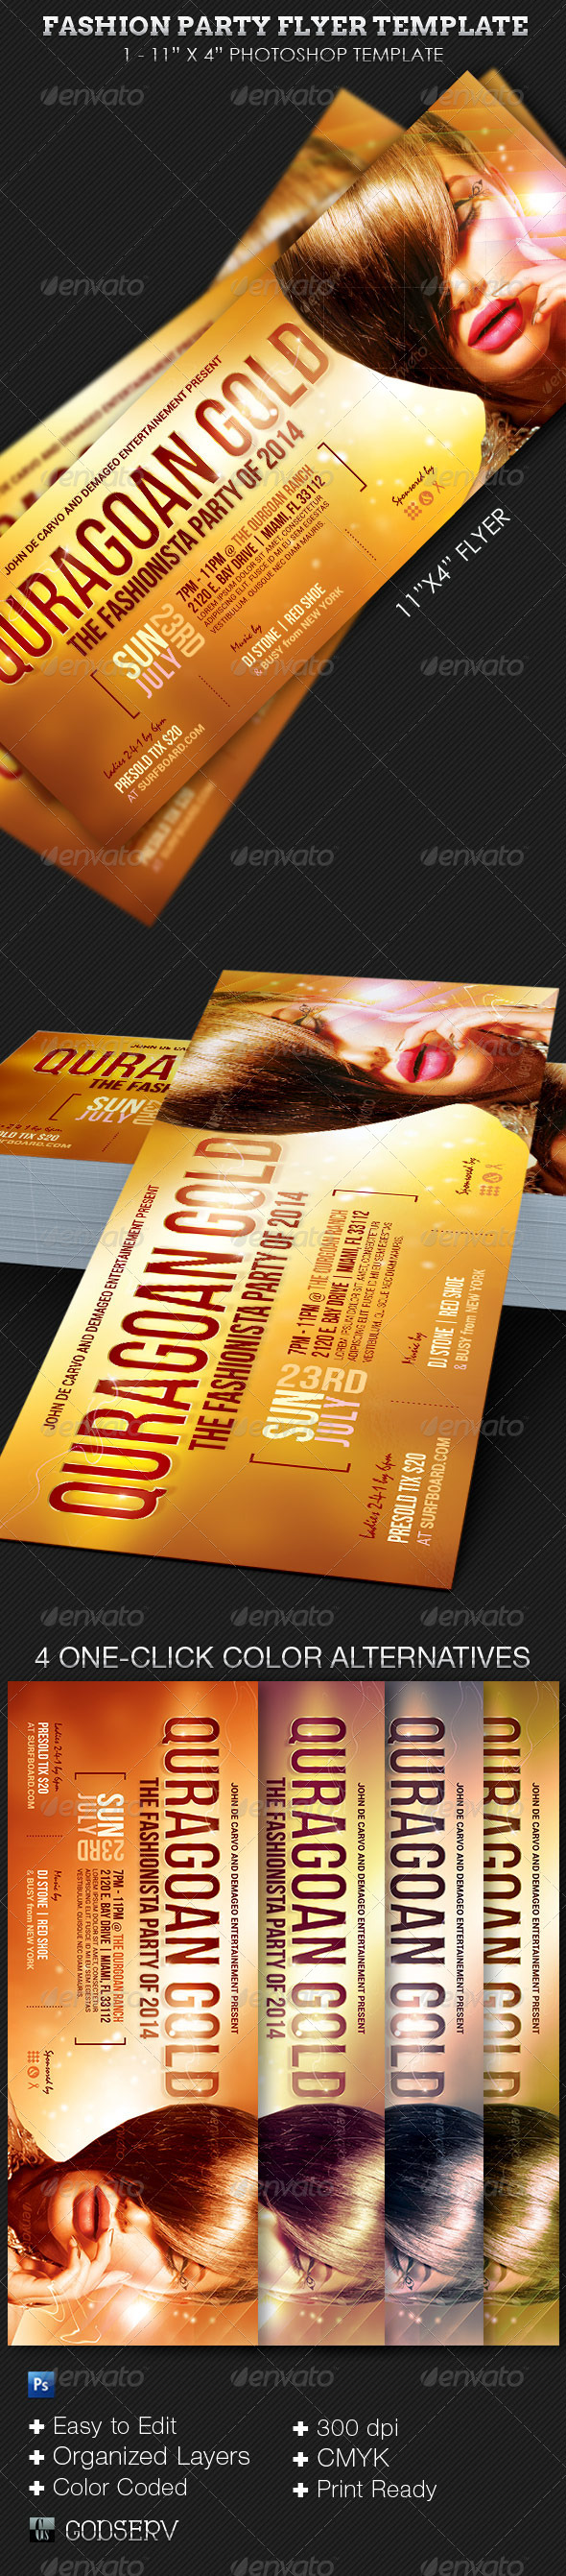 Fashion Party Event Flyer Template - Clubs & Parties Events